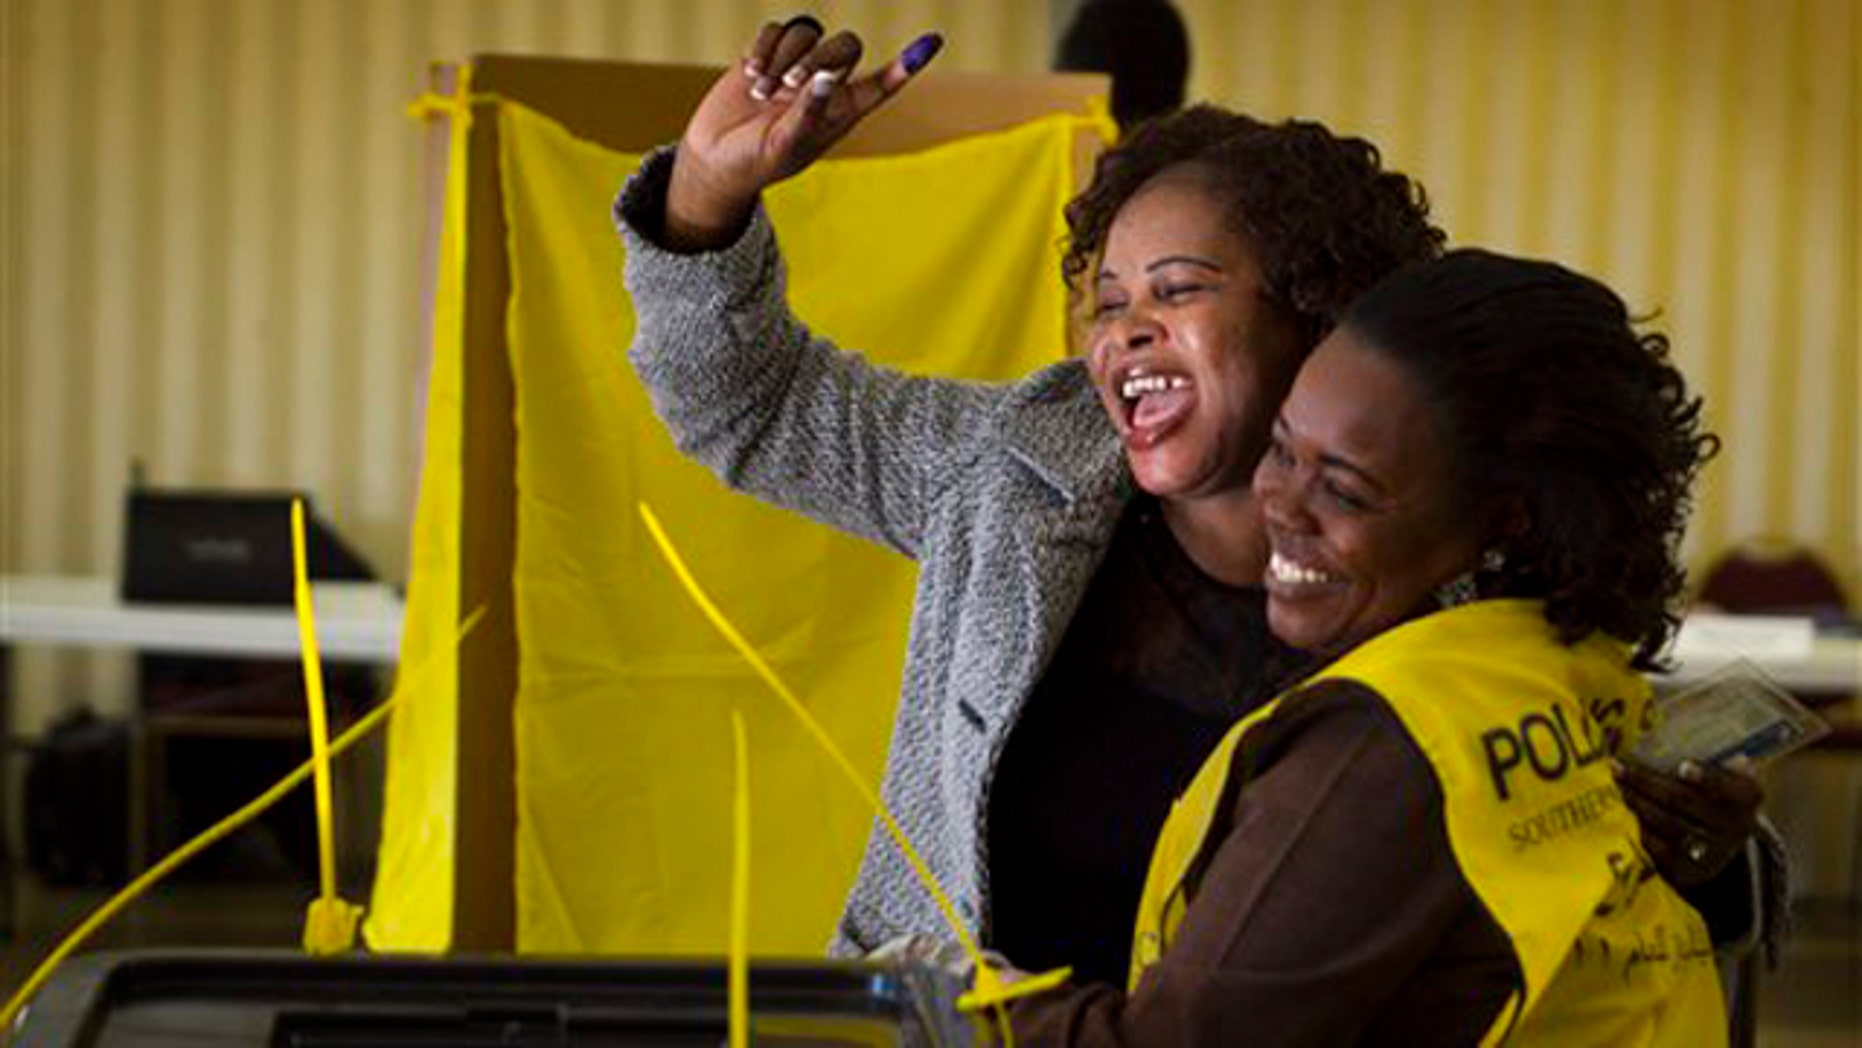 Jan 9, 2011: Helen Dembite, center, who came all the way from Queensland, Australia, just to vote cheers with her ink stained finger in the air next to Polling Staffer, Gisma Dabura, right, during the referendum vote on whether South Sudan will become independent from Sudan at St. James Catholic Church in Glendale, Ariz. The polling place in Glendale was one of only eight in the entire country. The ink stained finger shows that an individual voted and ensures the individual cannot vote again.